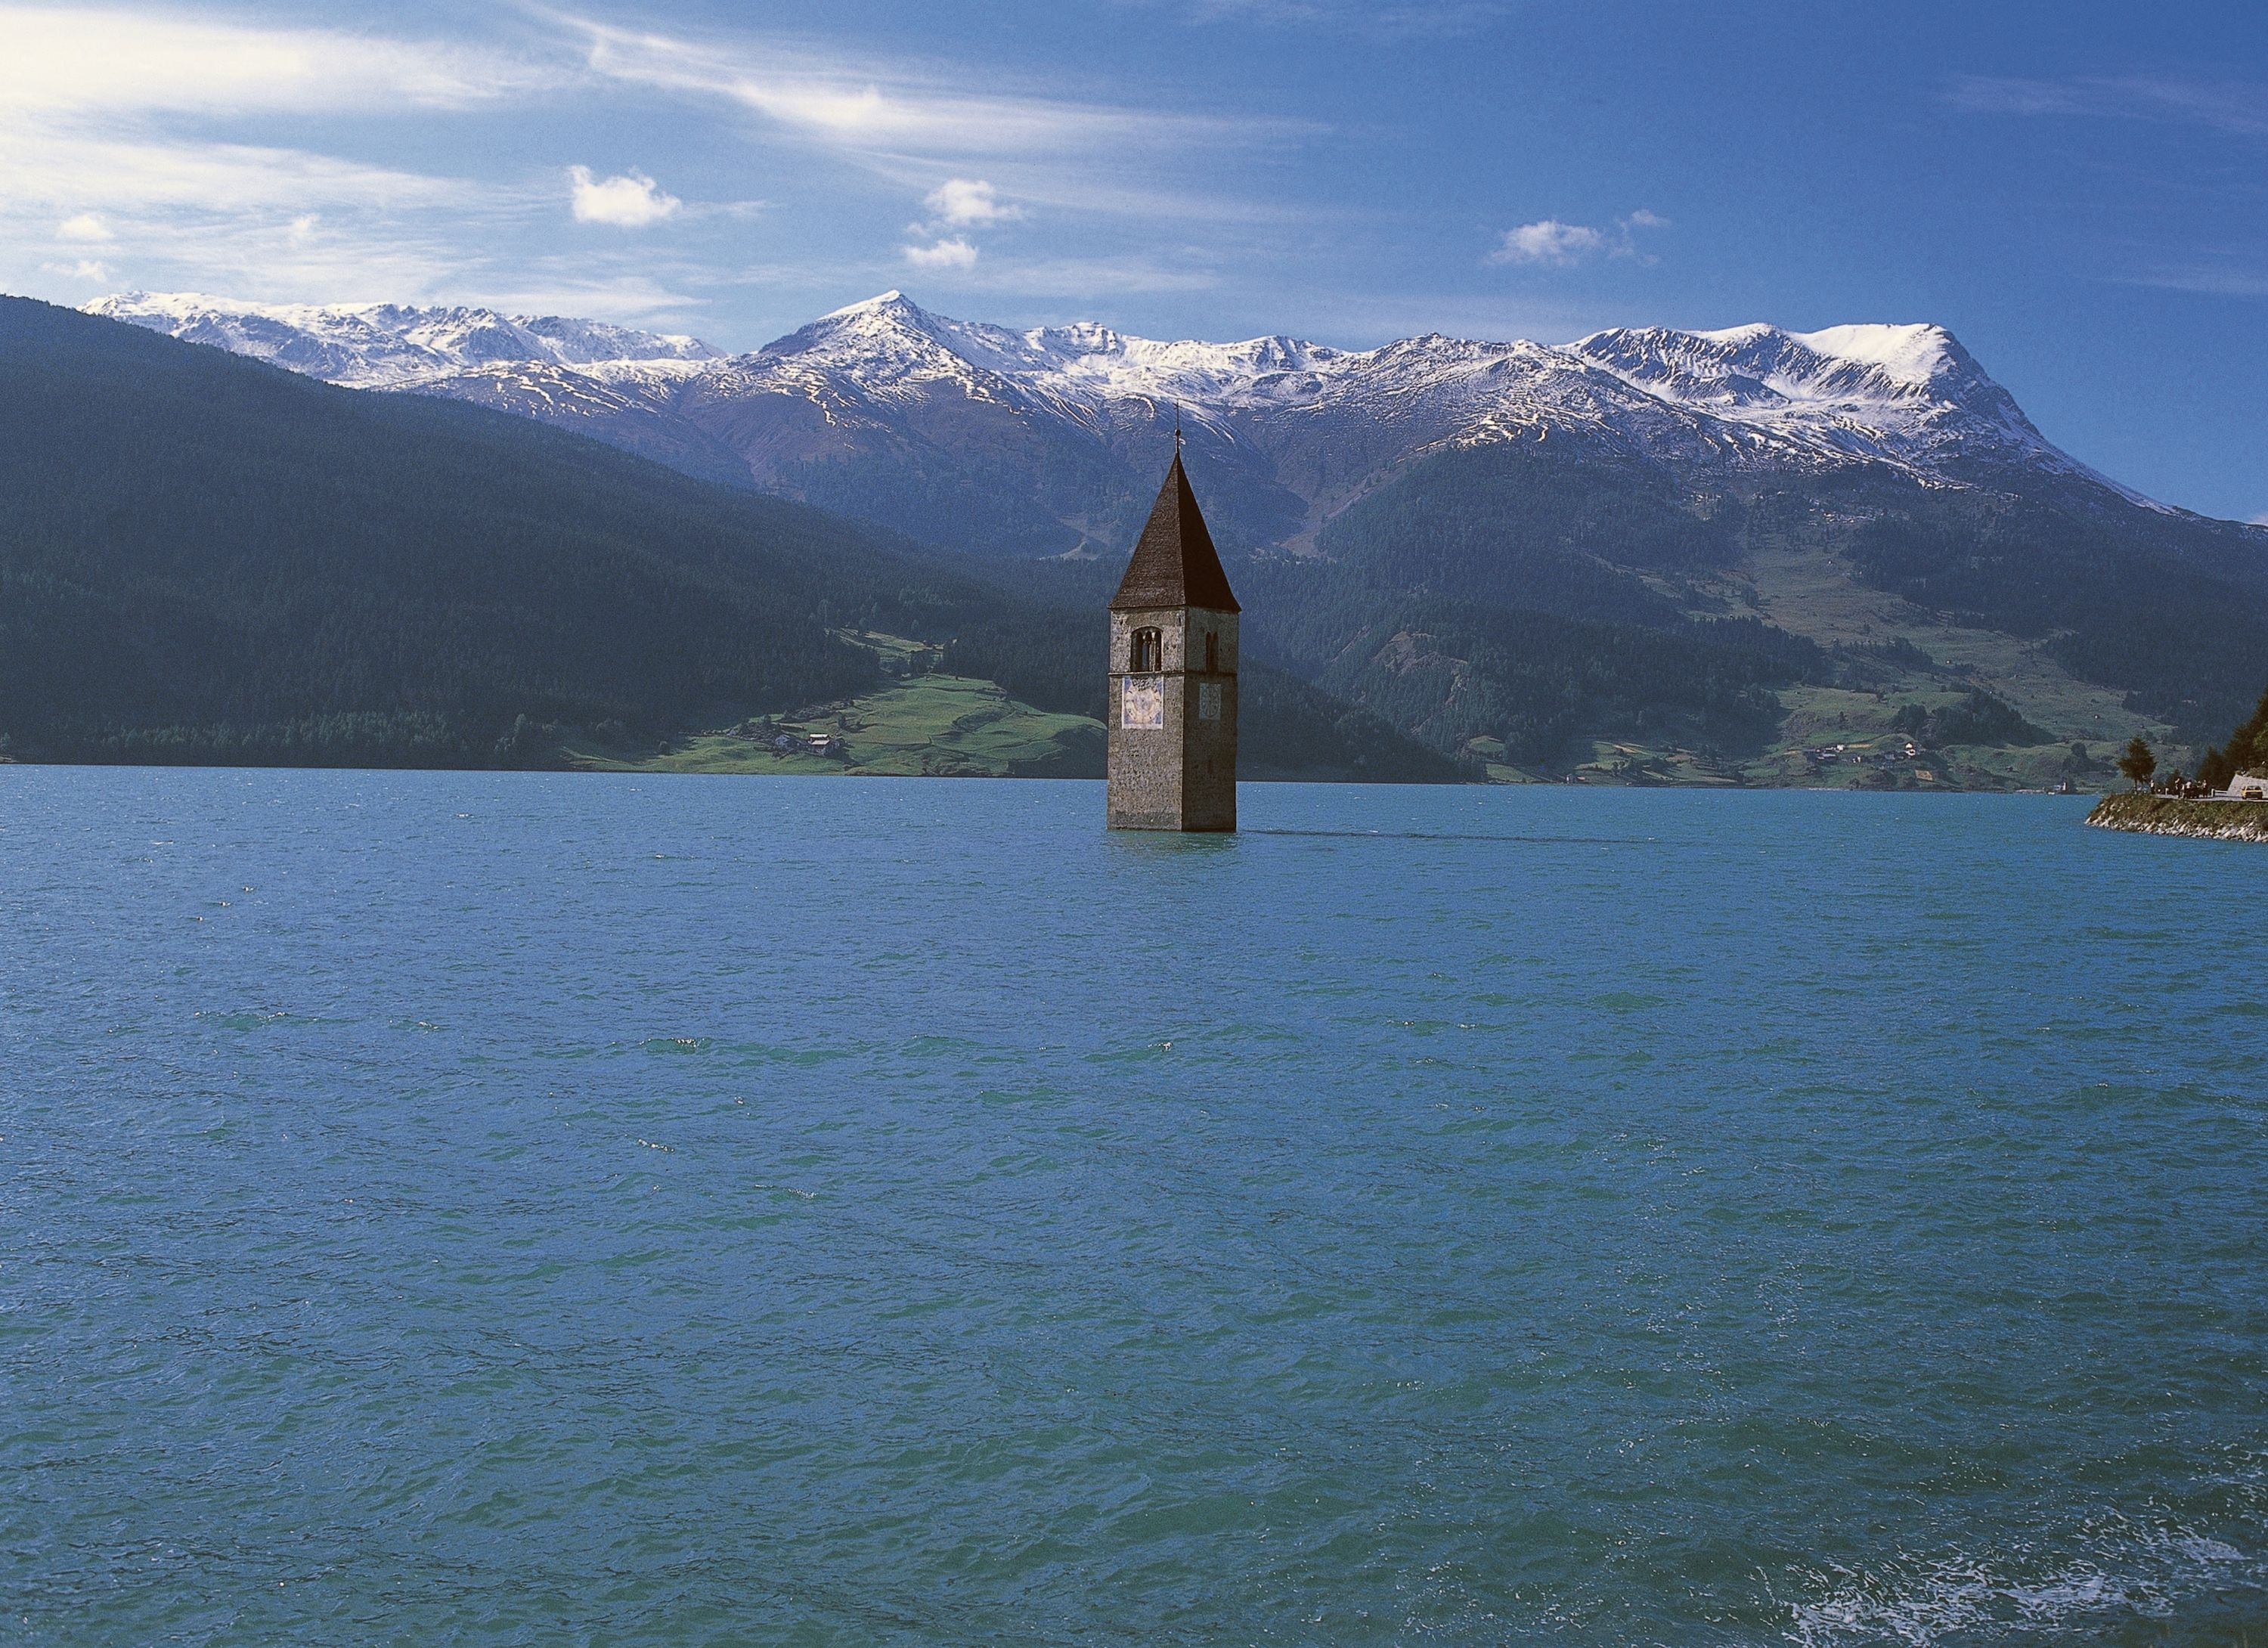 A Lost Italian Village Just Emerged After More Than 70 Years Underwater